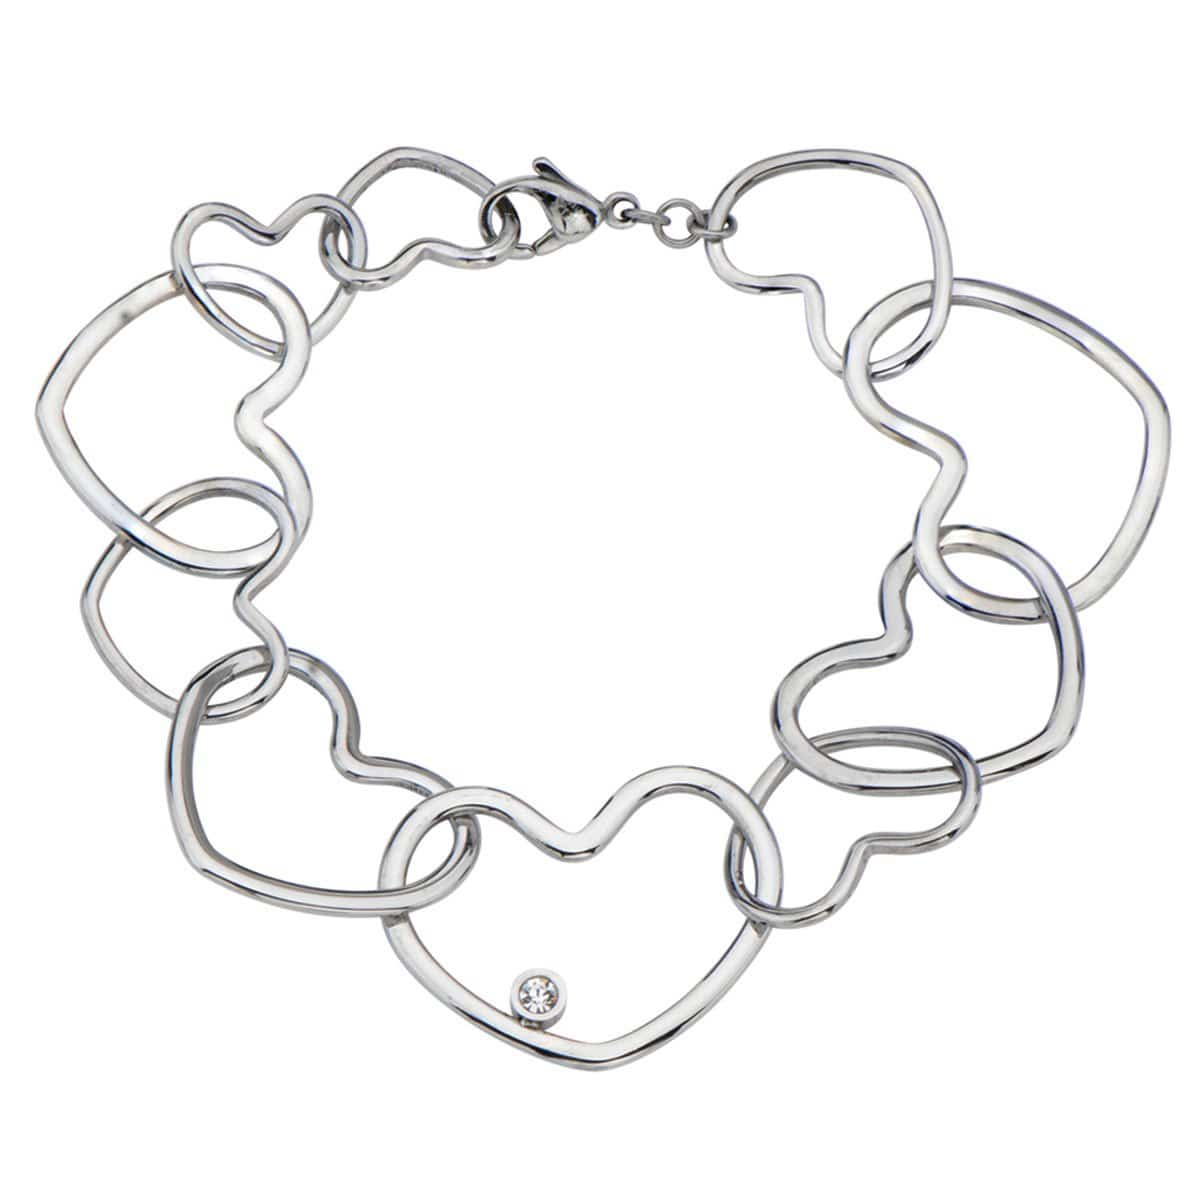 Silver Stainless Steel Interlocking Heart with CZ Detail Bracelet